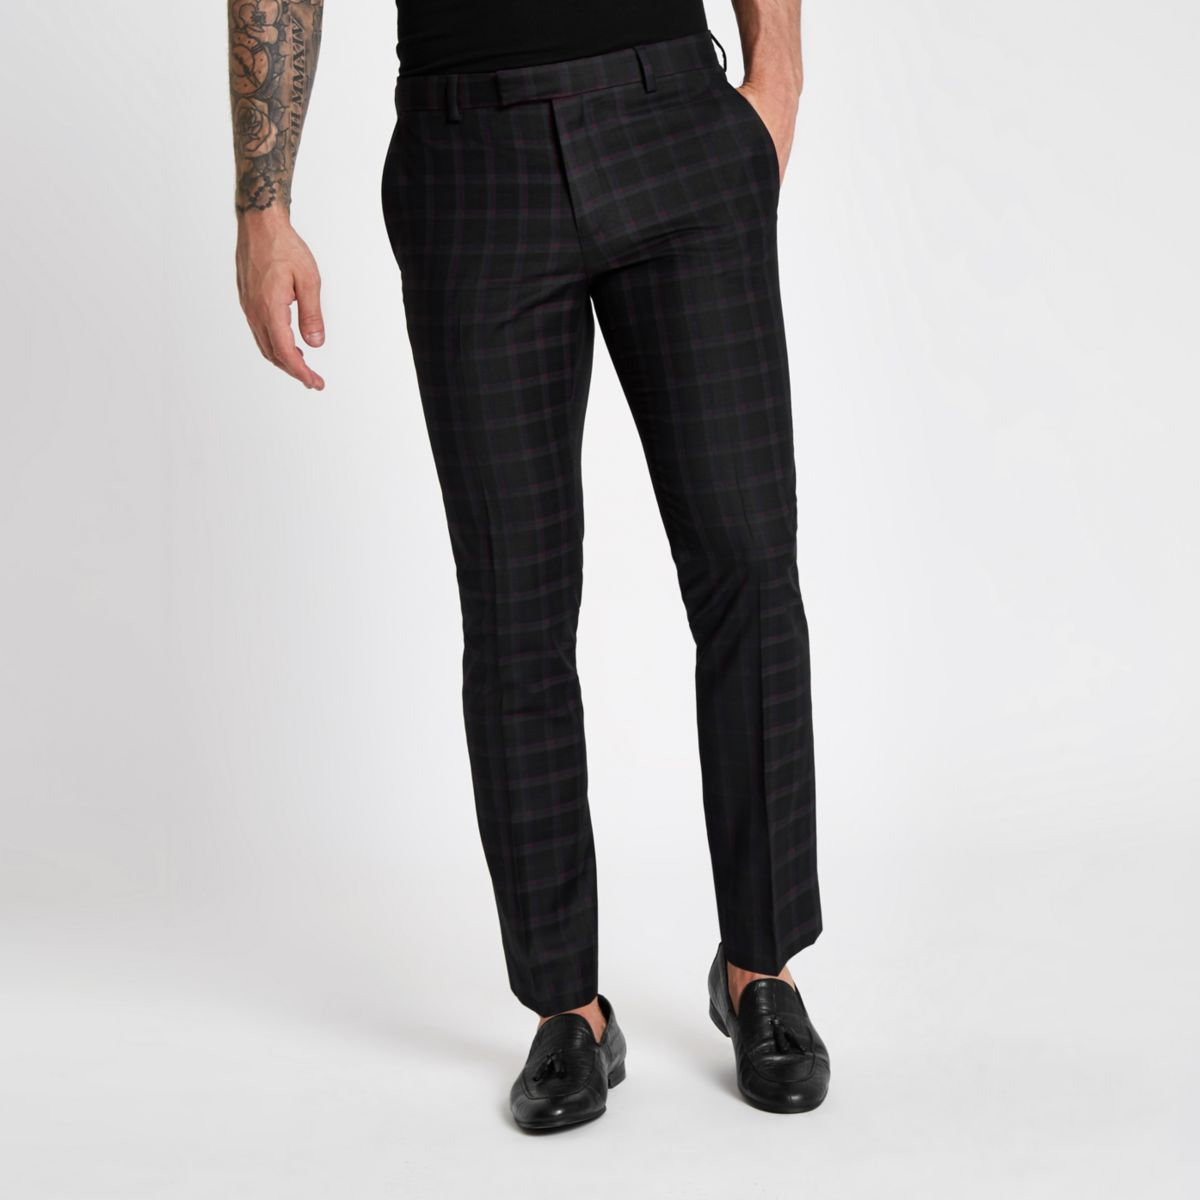 Mens Black and burgundy check skinny suit trousers River Island zgHWyrs